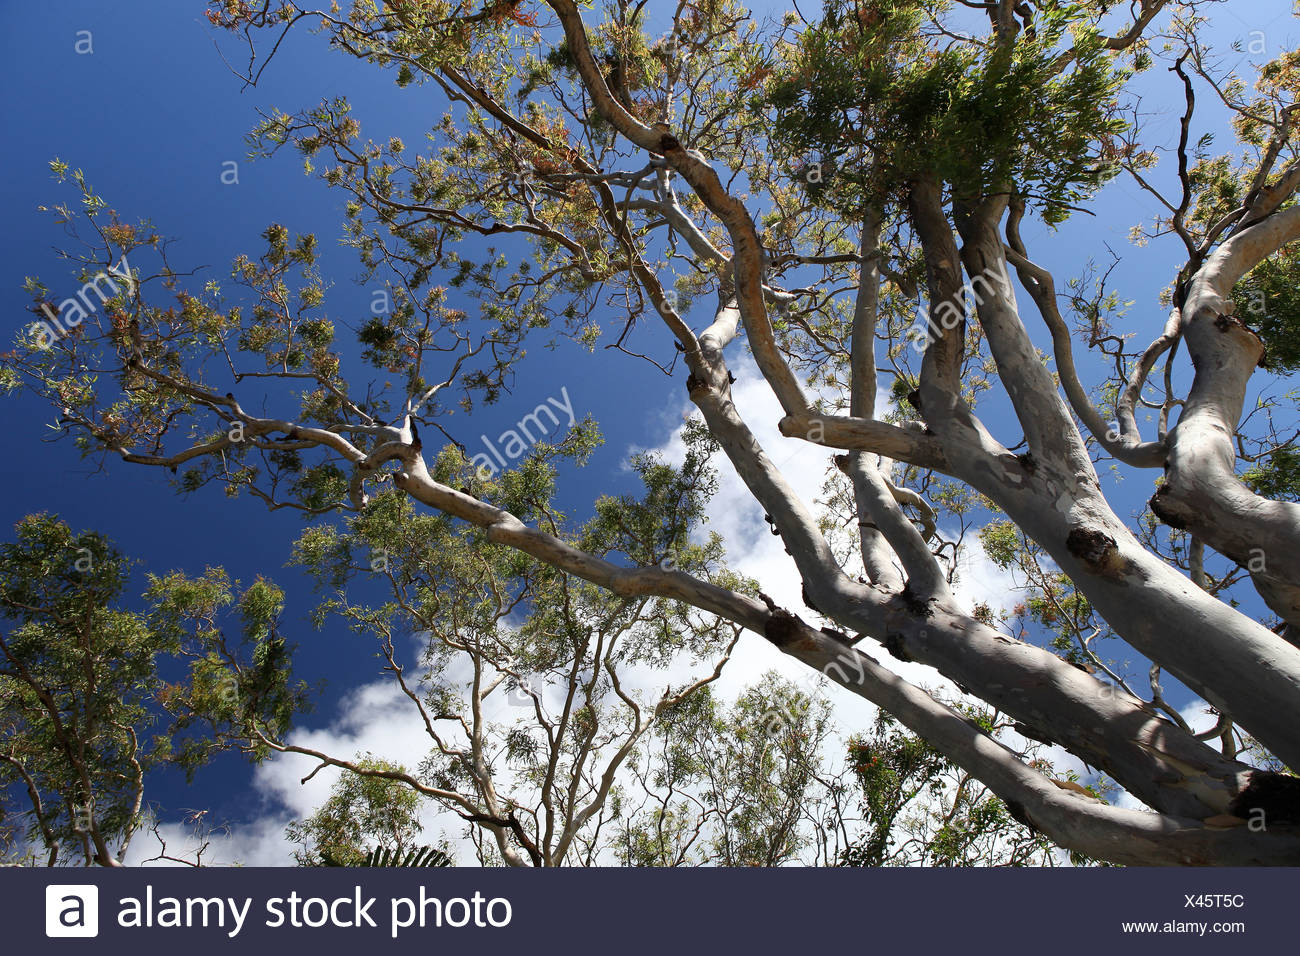 Tree, eucalyptus, karri, Ghost Gum, white, trunk, koala, endemically, typical, bark, sky, from below, leaf, leaves, nature, fire - Stock Image